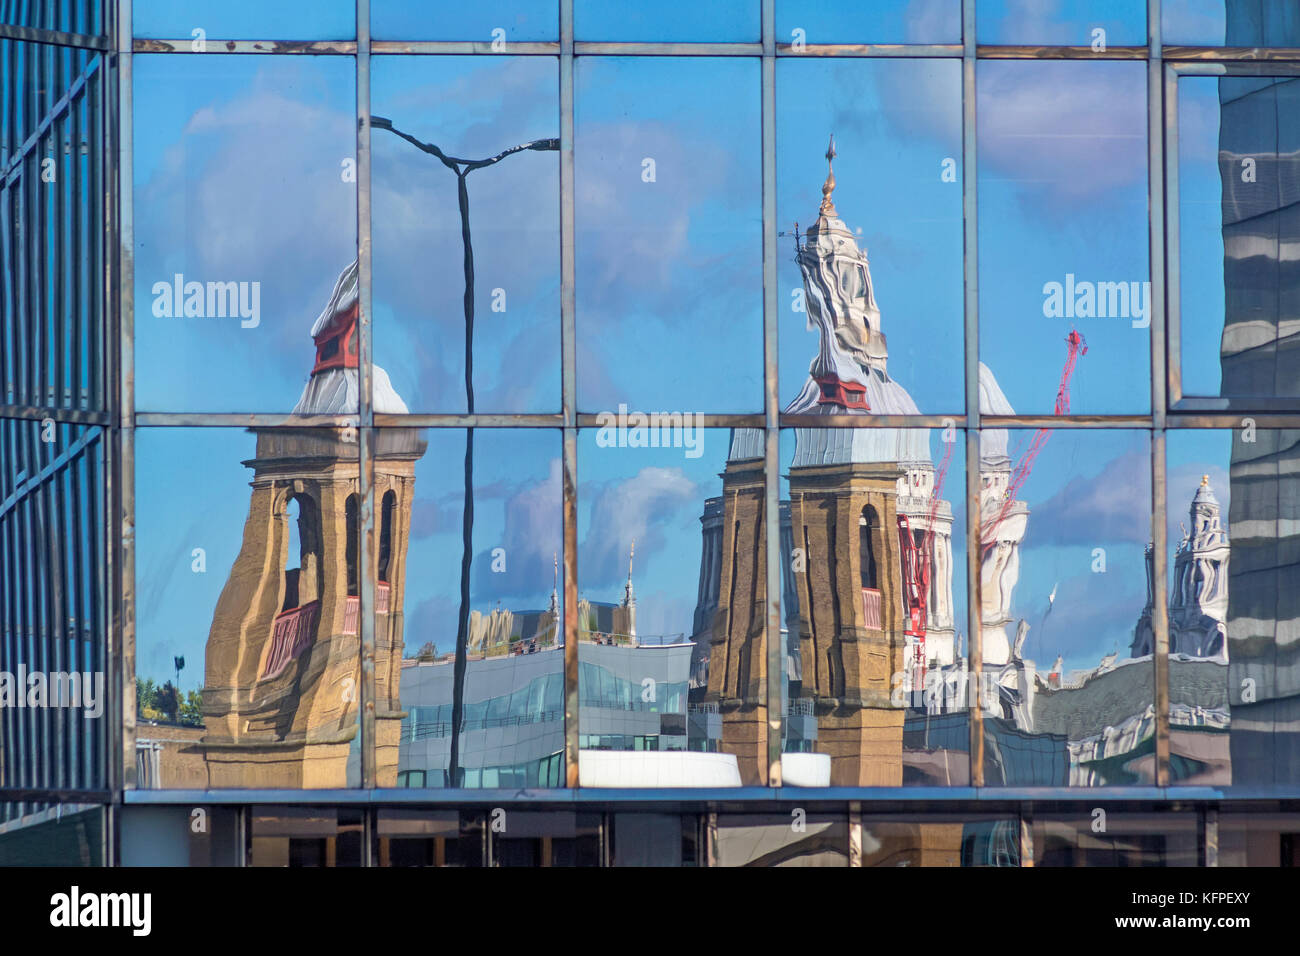 A distorted image of Cannon Street station and St Paul's Cathedral reflected in the glass frontage of an office - Stock Image